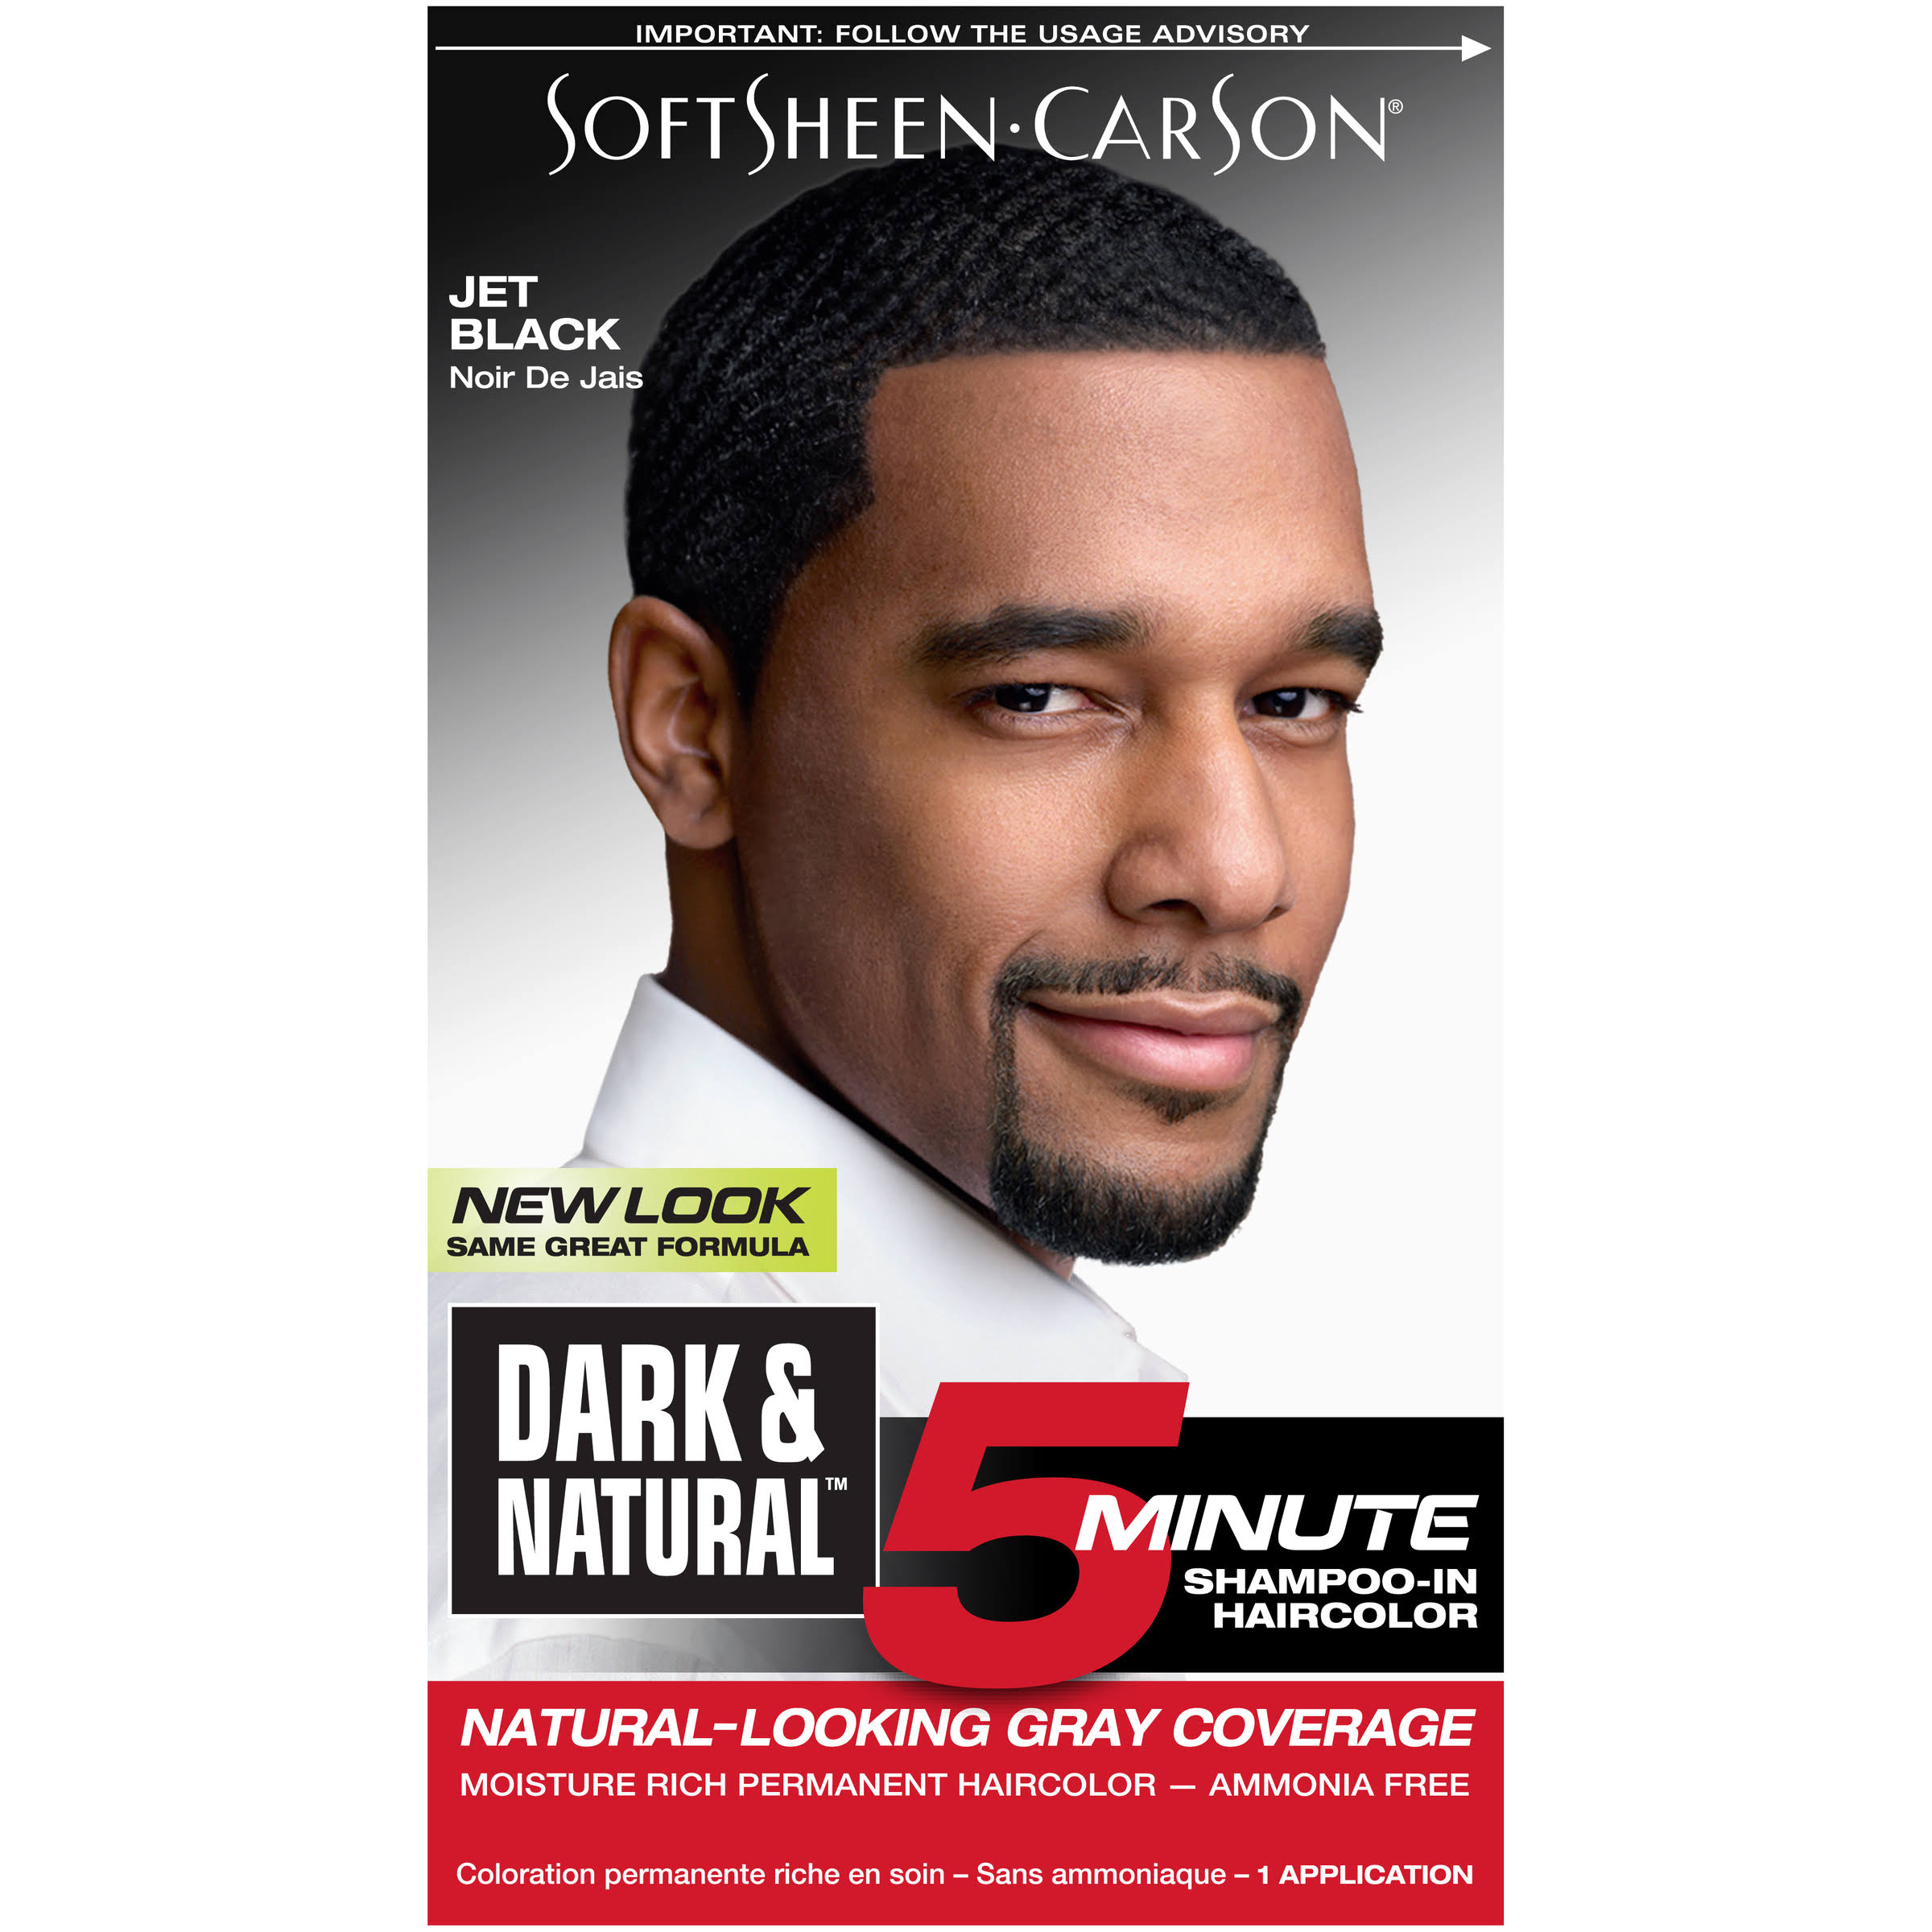 Softsheen Carson Dark and Natural 5 Minute Permanent Hair Color Kit - Jet Black